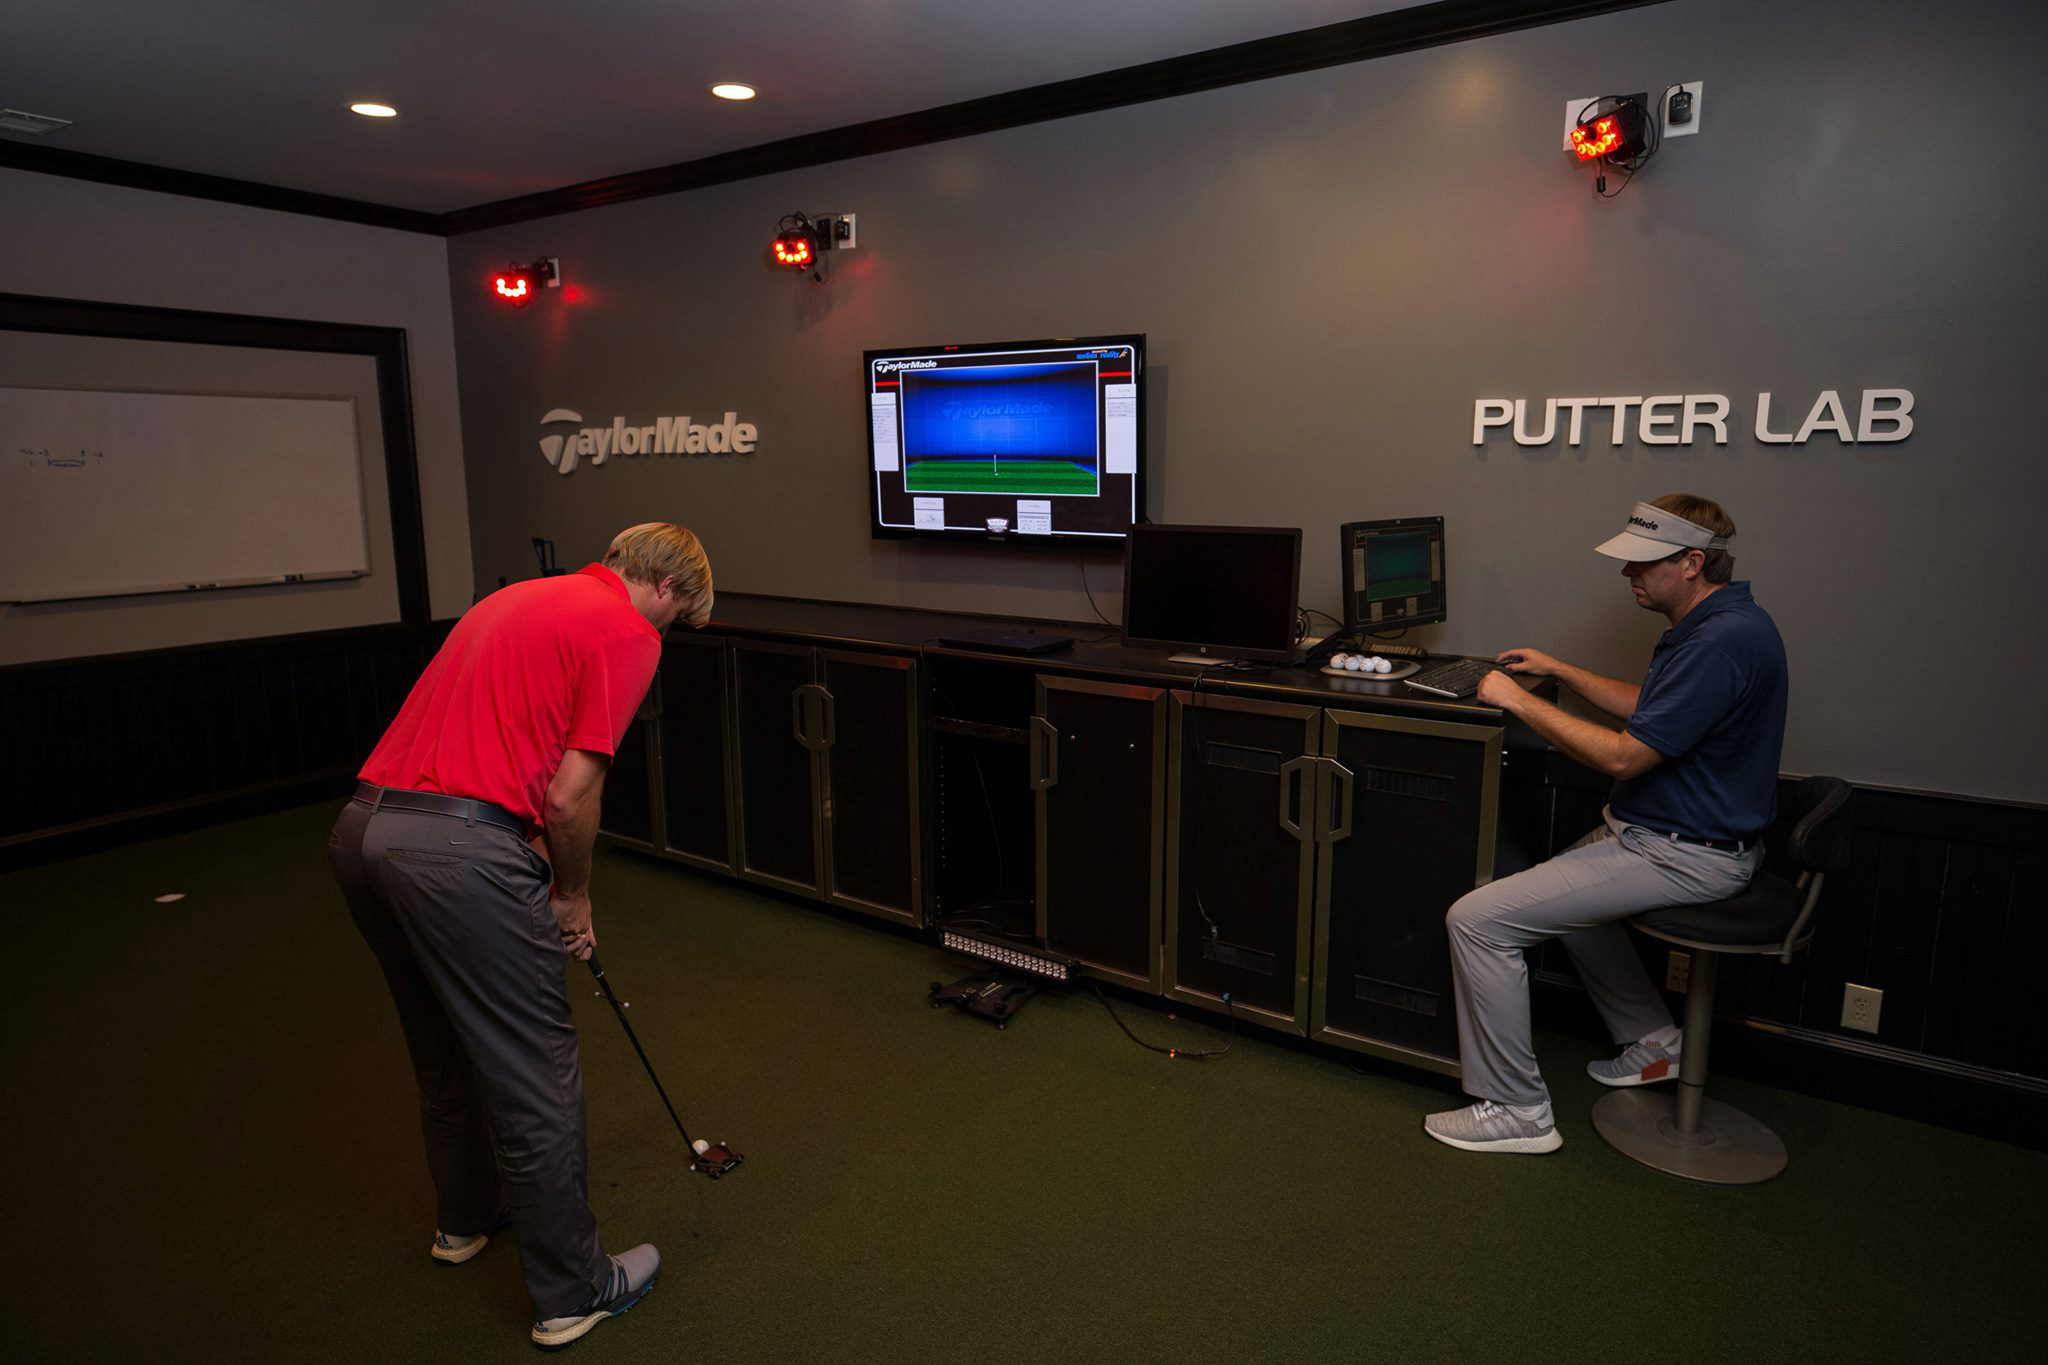 Putter Lab at the Kingdom of Golf at Reynolds Lake Oconee